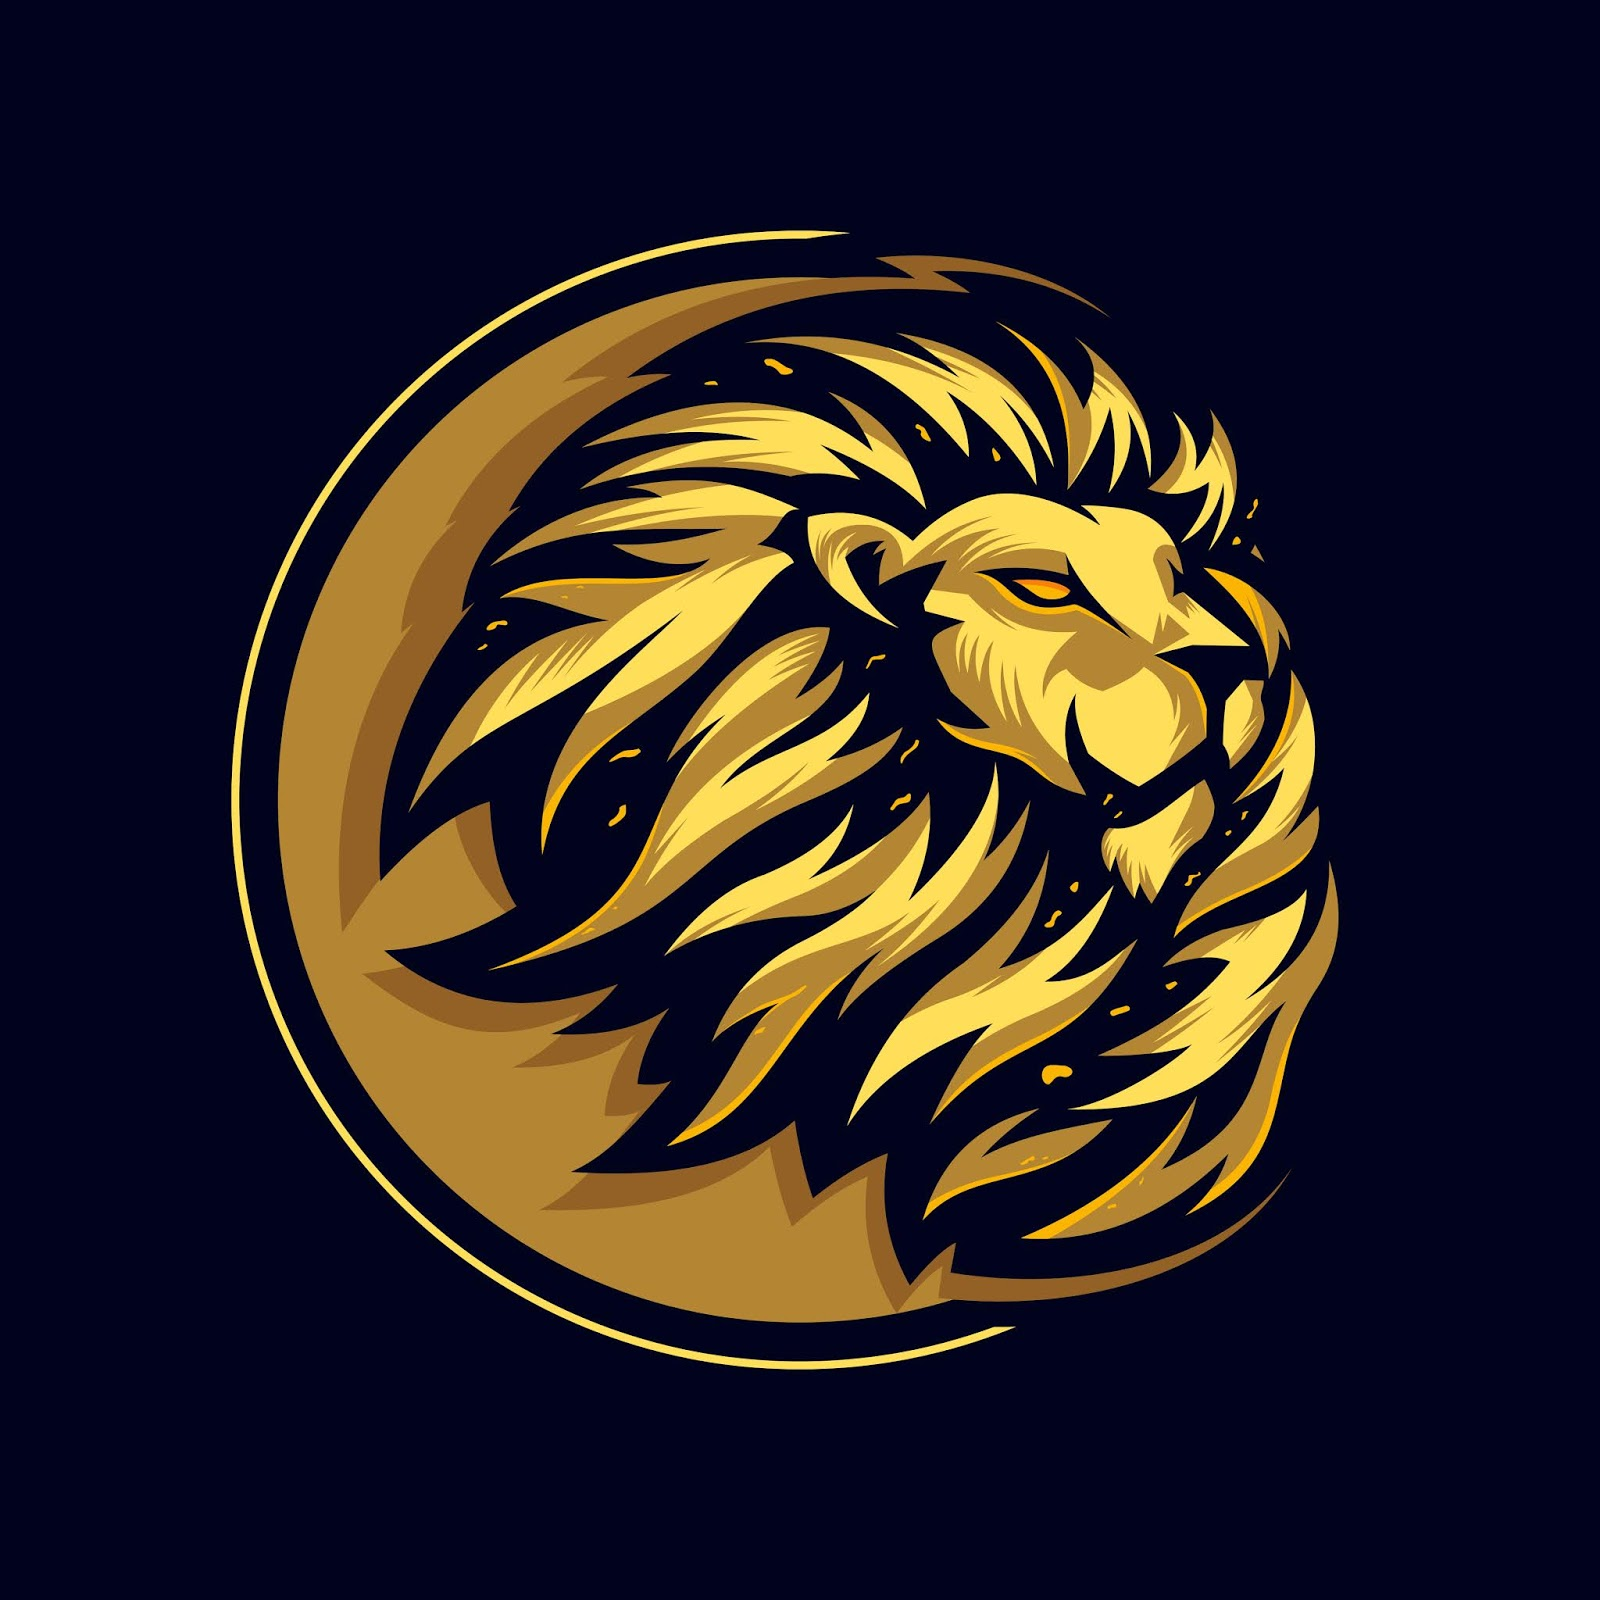 Awesome Head Lion Logo Premium Free Download Vector CDR, AI, EPS and PNG Formats